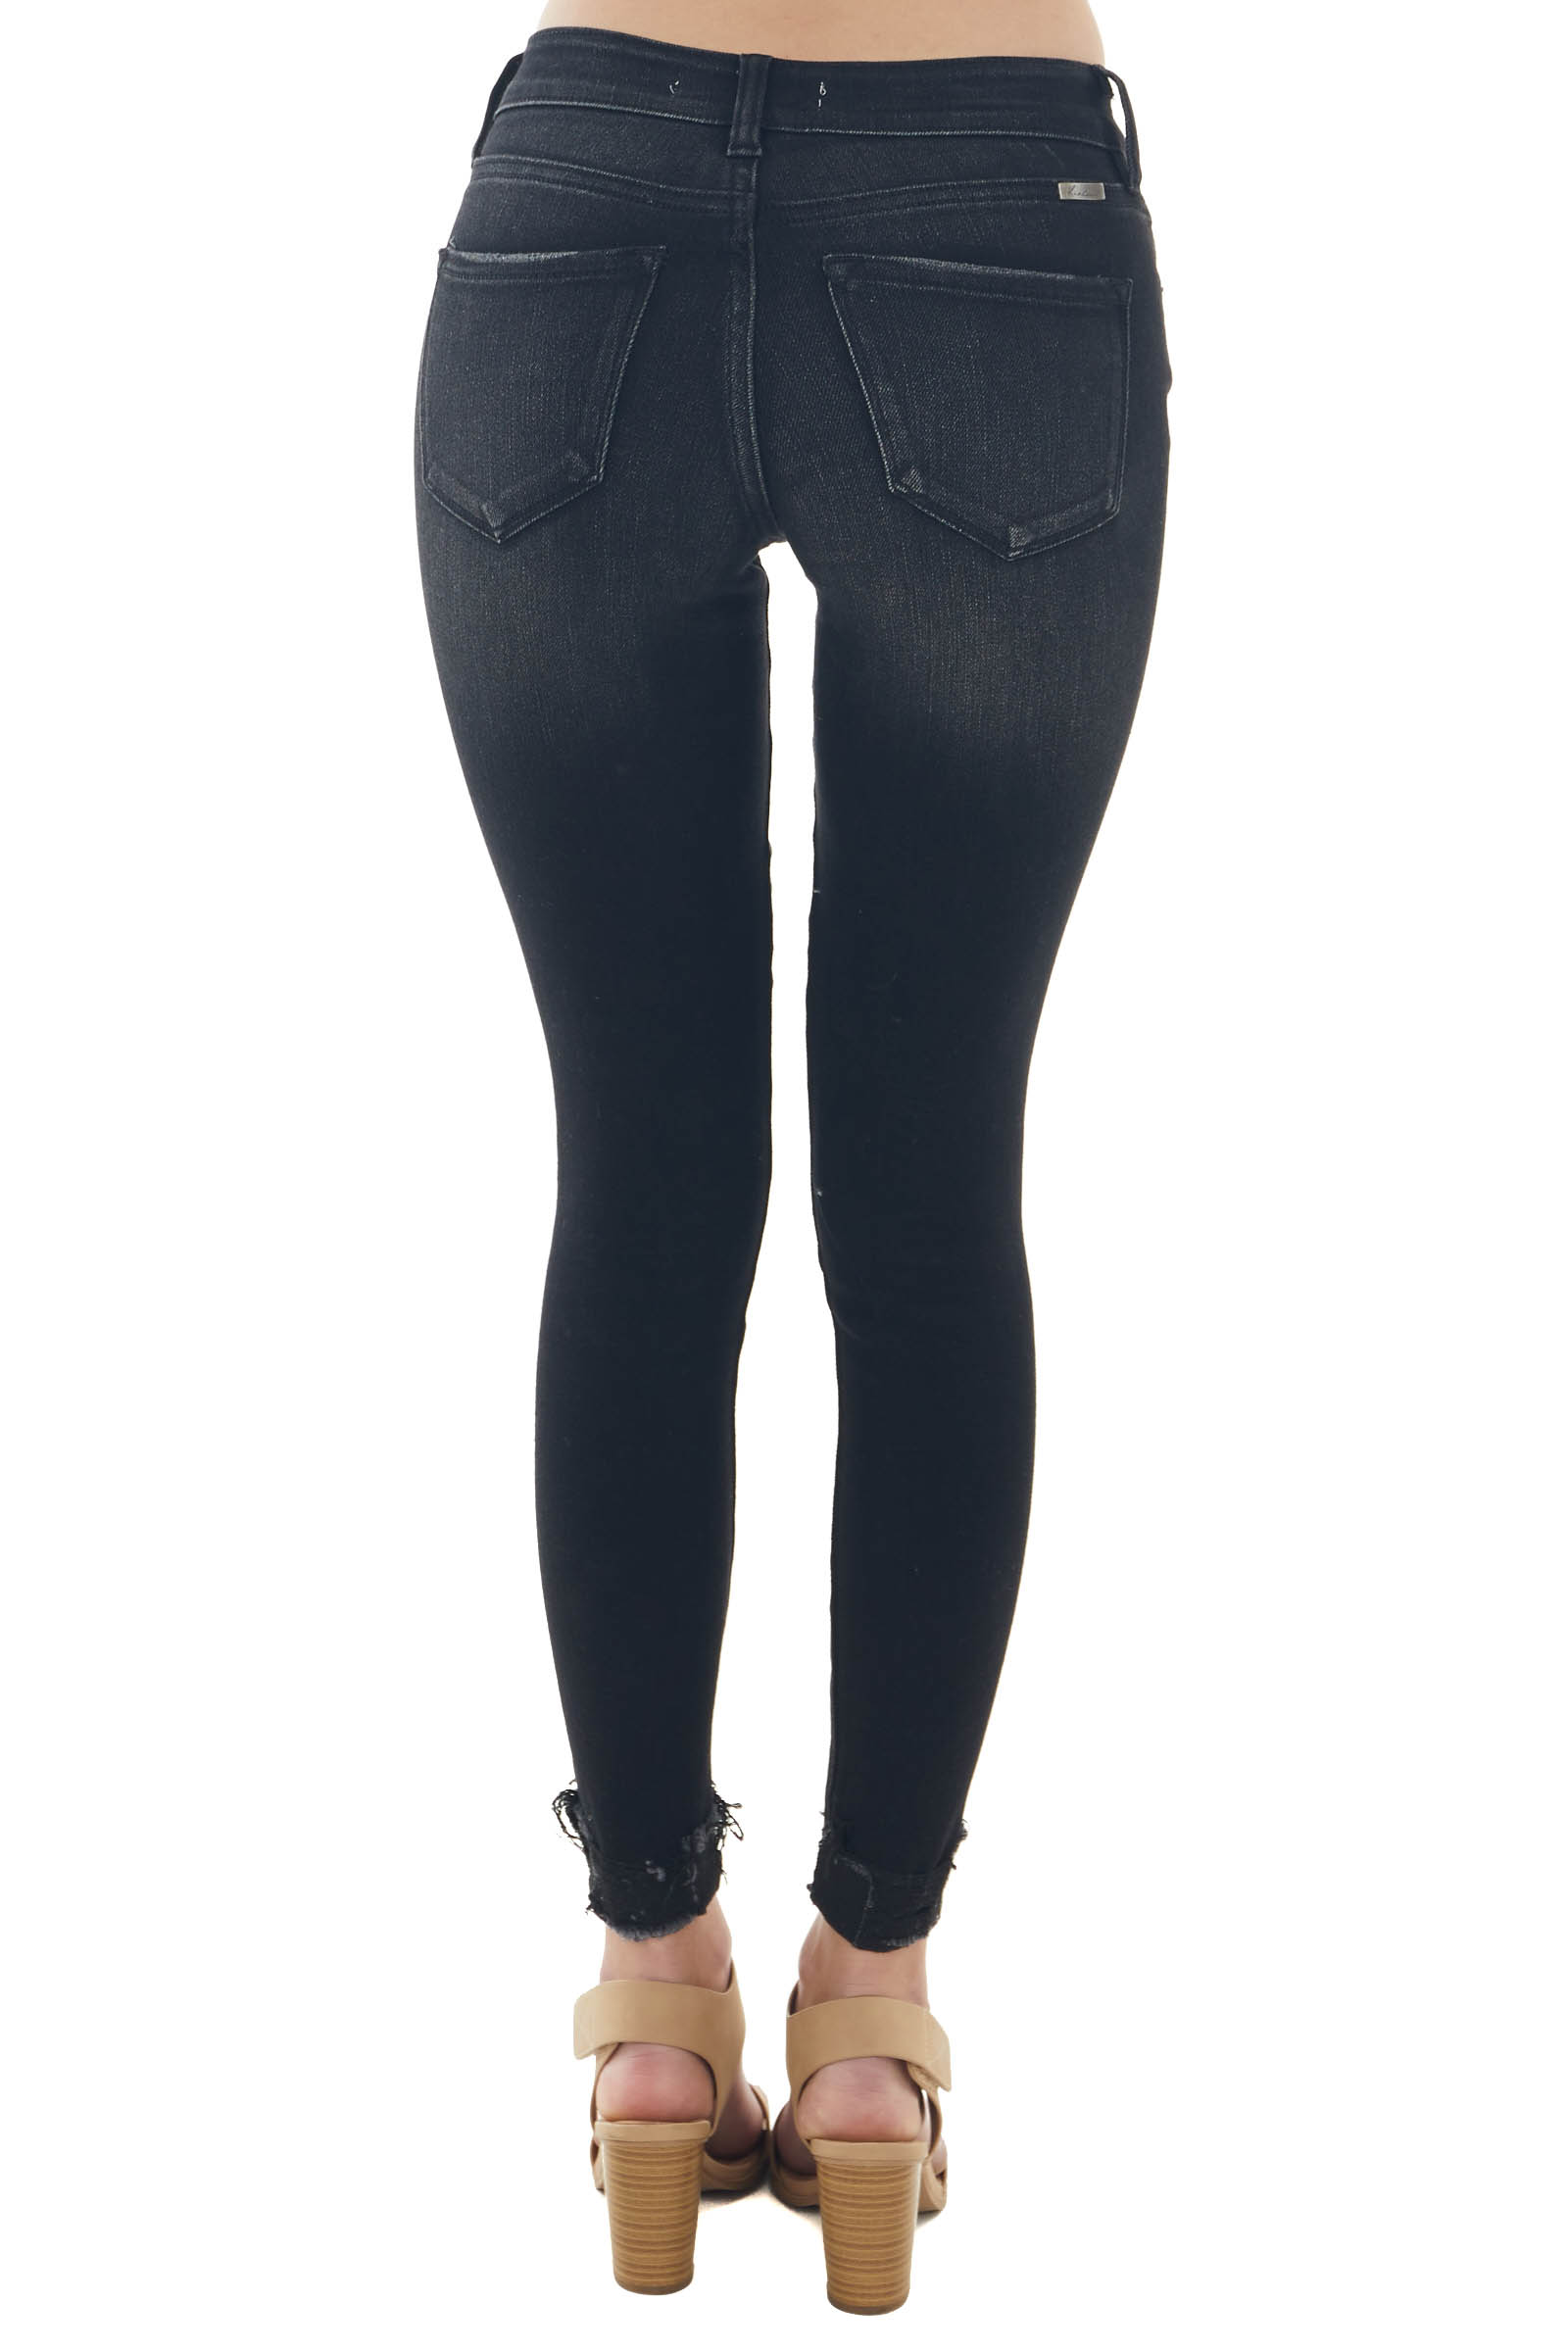 Black Washed Mid Rise Distressed Skinny Jeans